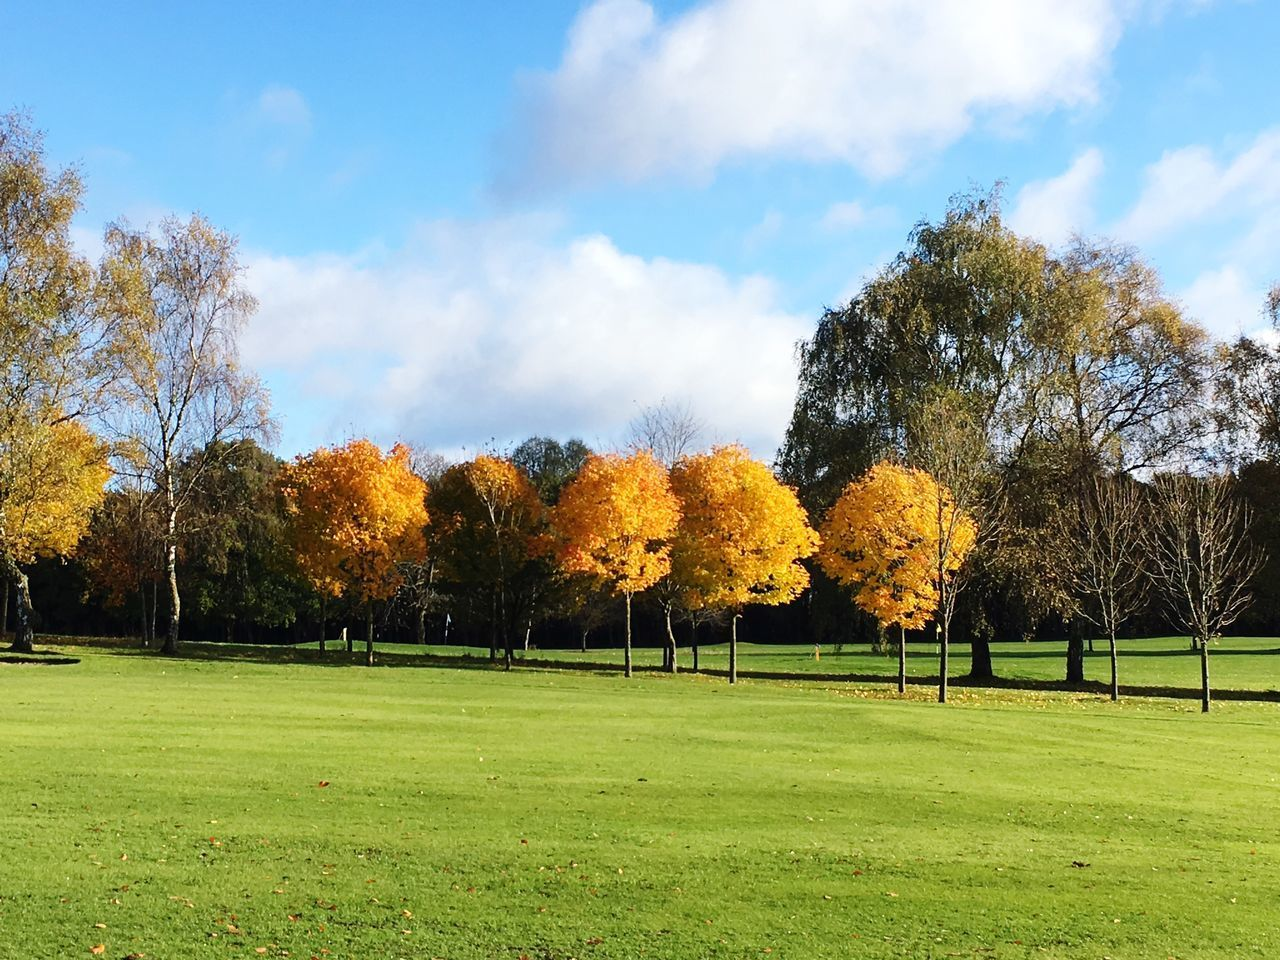 tree, grass, nature, beauty in nature, tranquility, sky, tranquil scene, scenics, autumn, field, green color, growth, cloud - sky, landscape, change, day, no people, leaf, outdoors, park - man made space, playing field, yellow, sport, soccer field